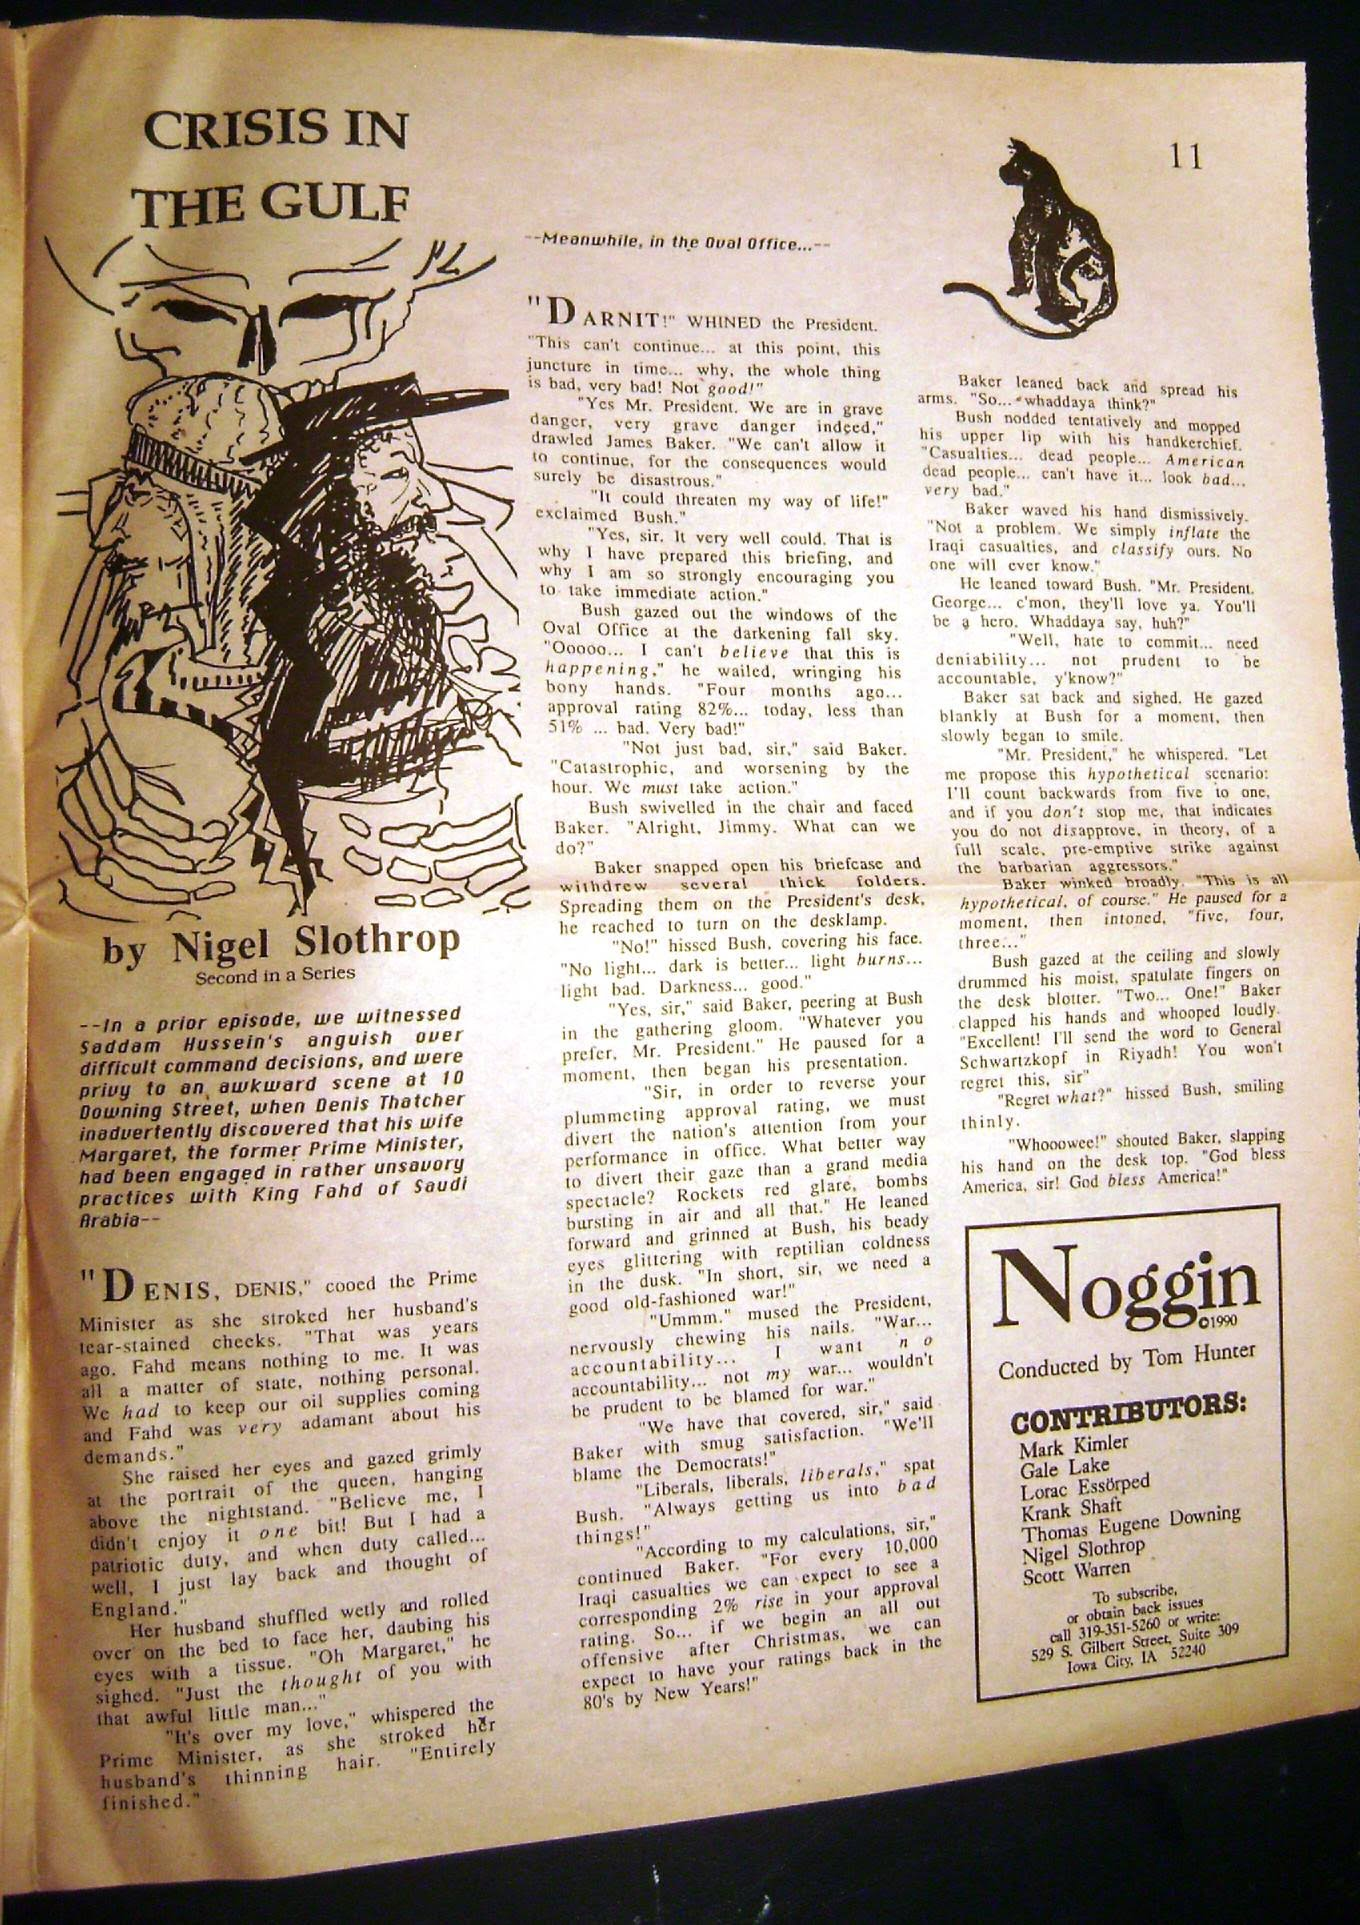 Noggin Magazine: V1N2, Nov/Dec 1990, Page 11